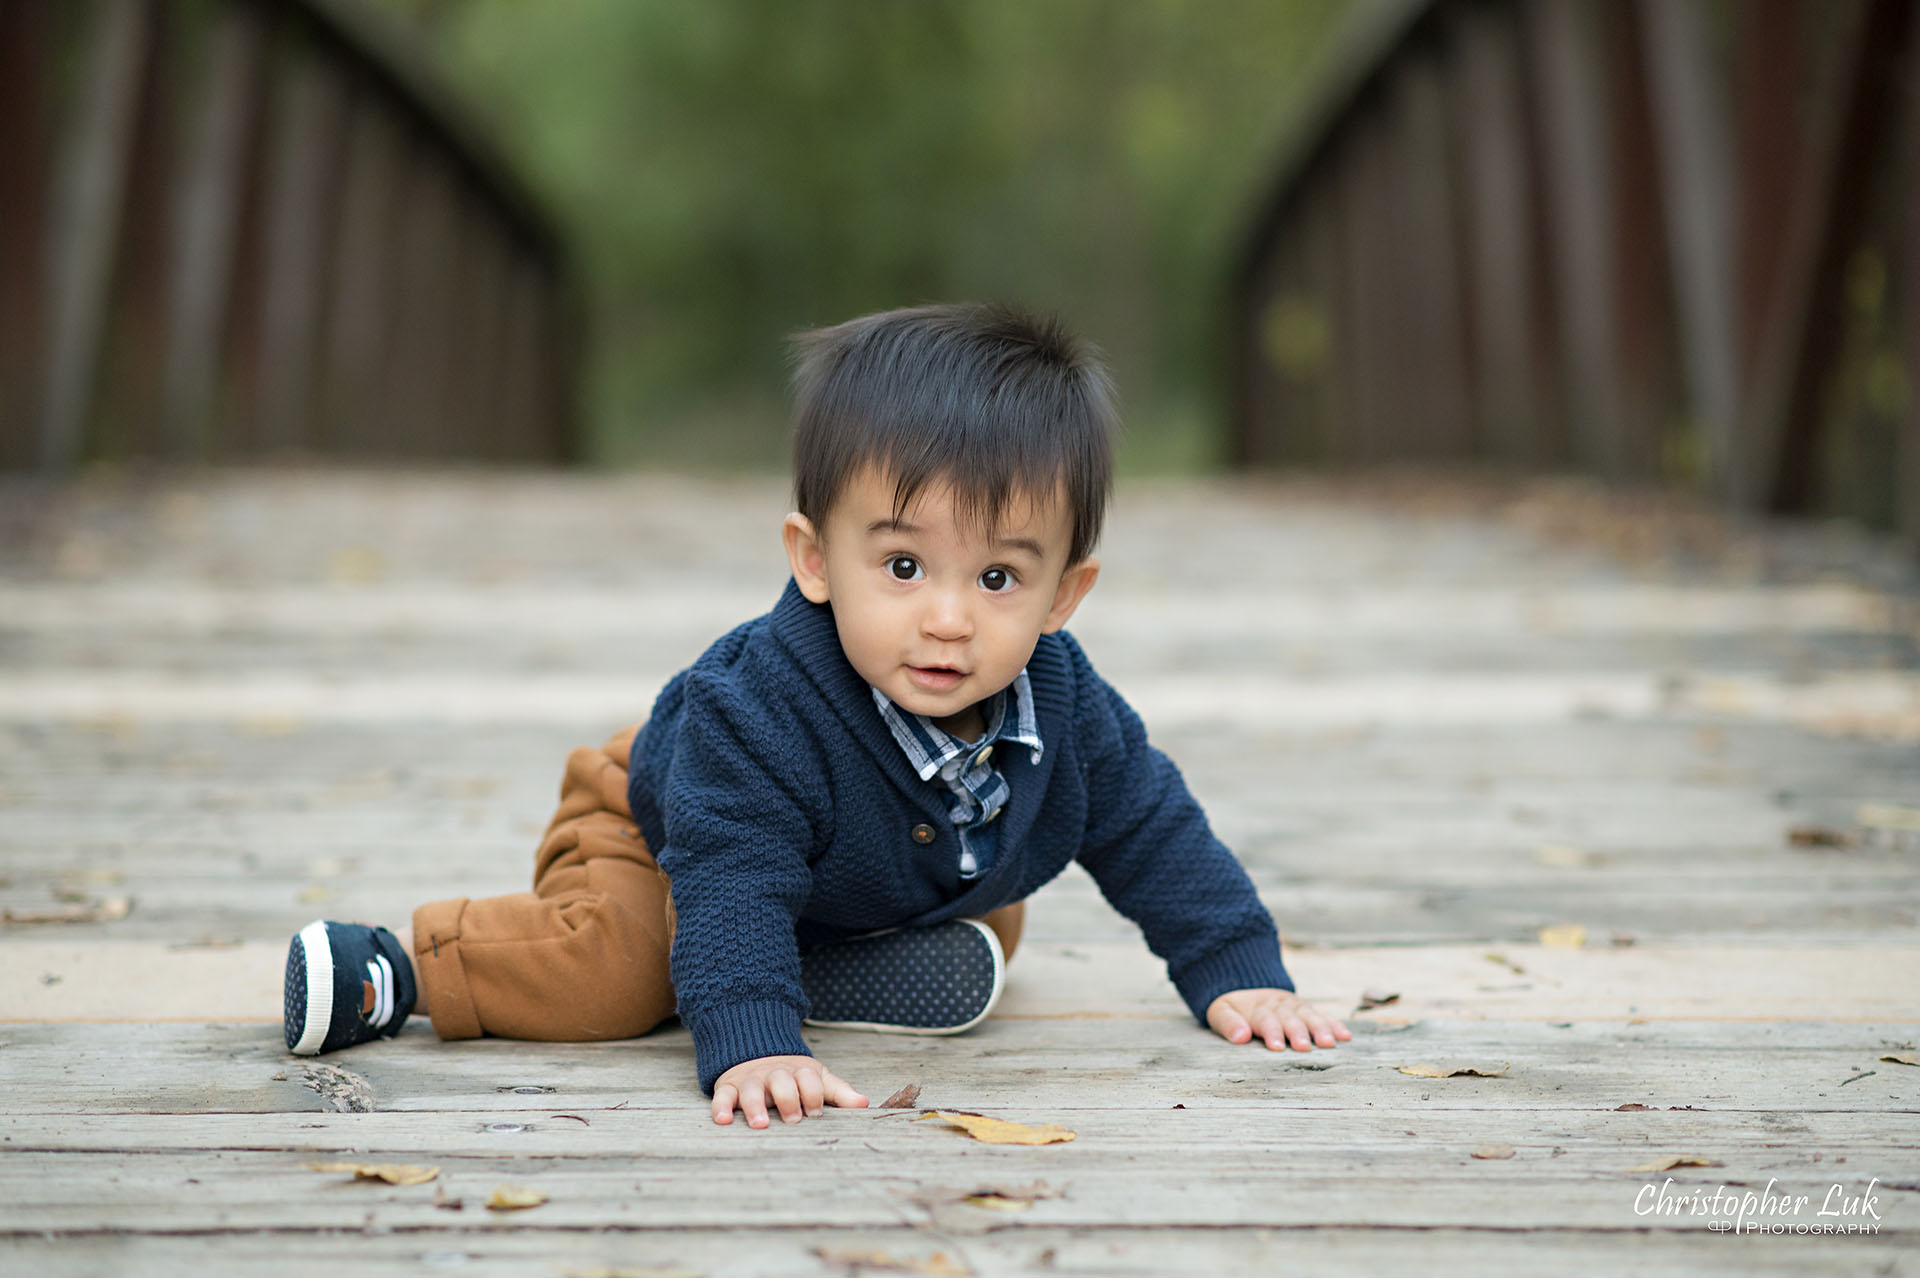 Christopher Luk Family Photographer Toronto Markham Unionville Autumn Fall Leaves Natural Candid Photojournalistic Son Brother Boy Crawling Baby Sitting Playing Bridge